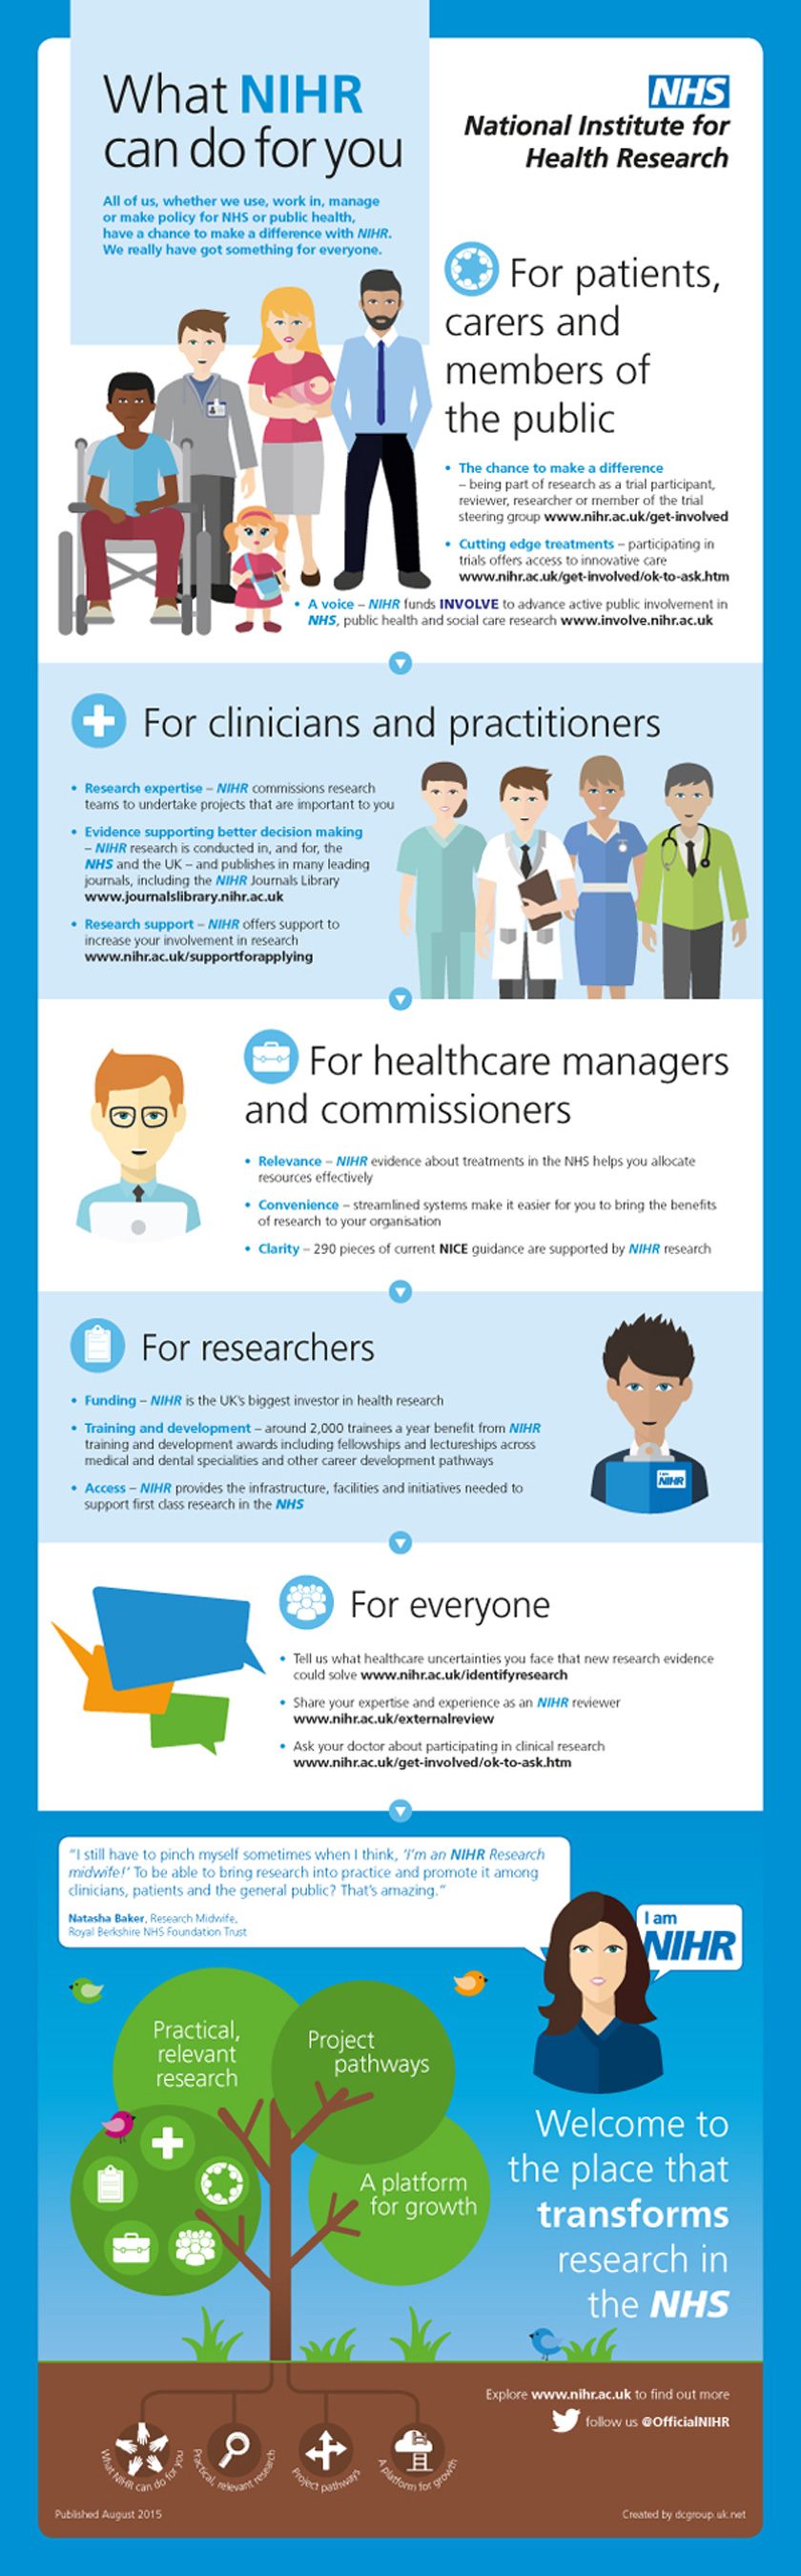 What NIHR Can Do forYou